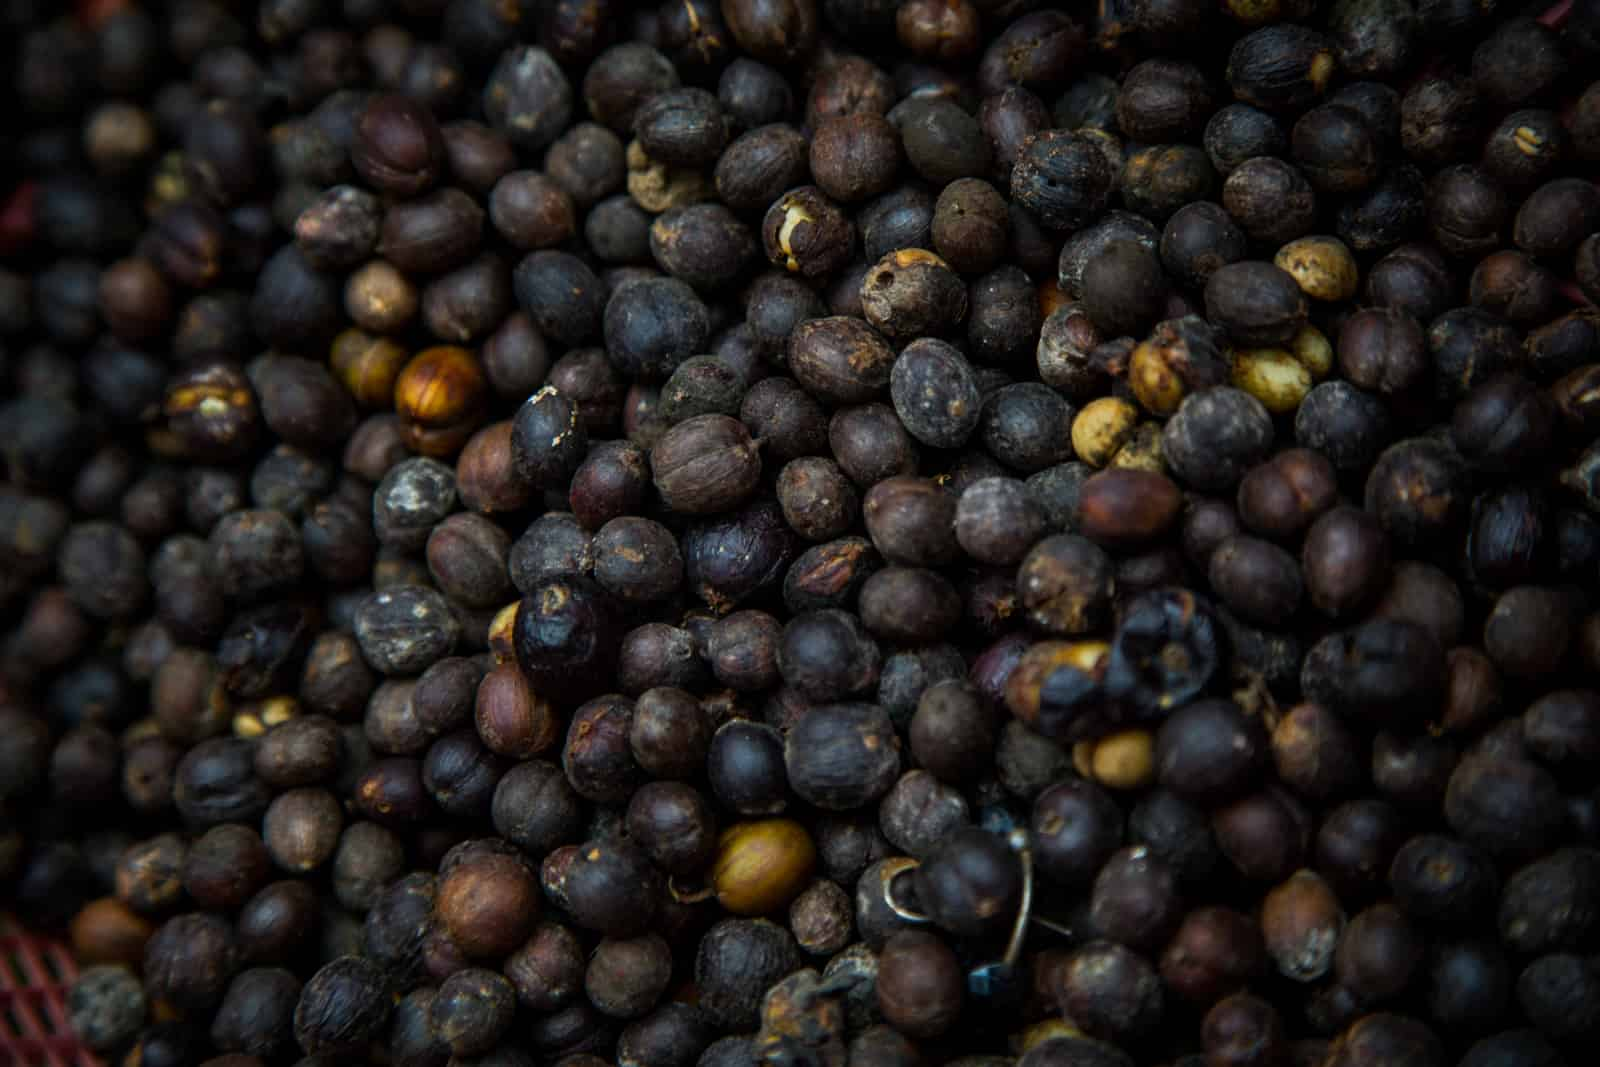 A close-up of Ethiopian roasted coffee beans